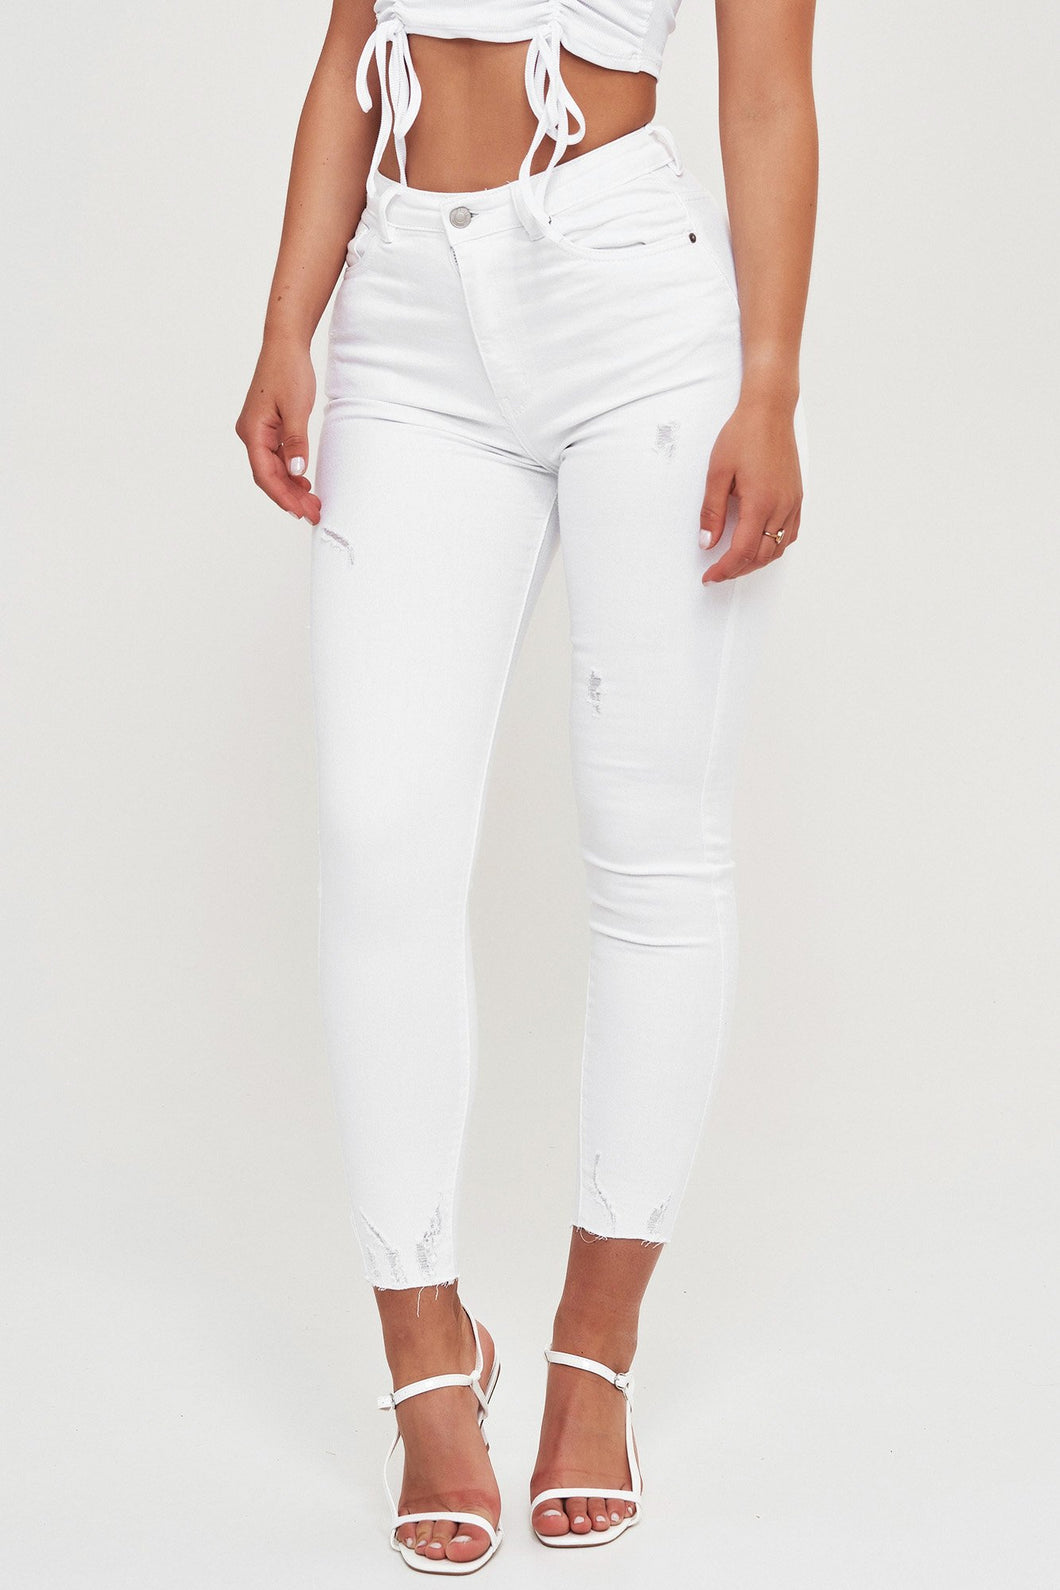 Weiße High Waist Basis Jeans